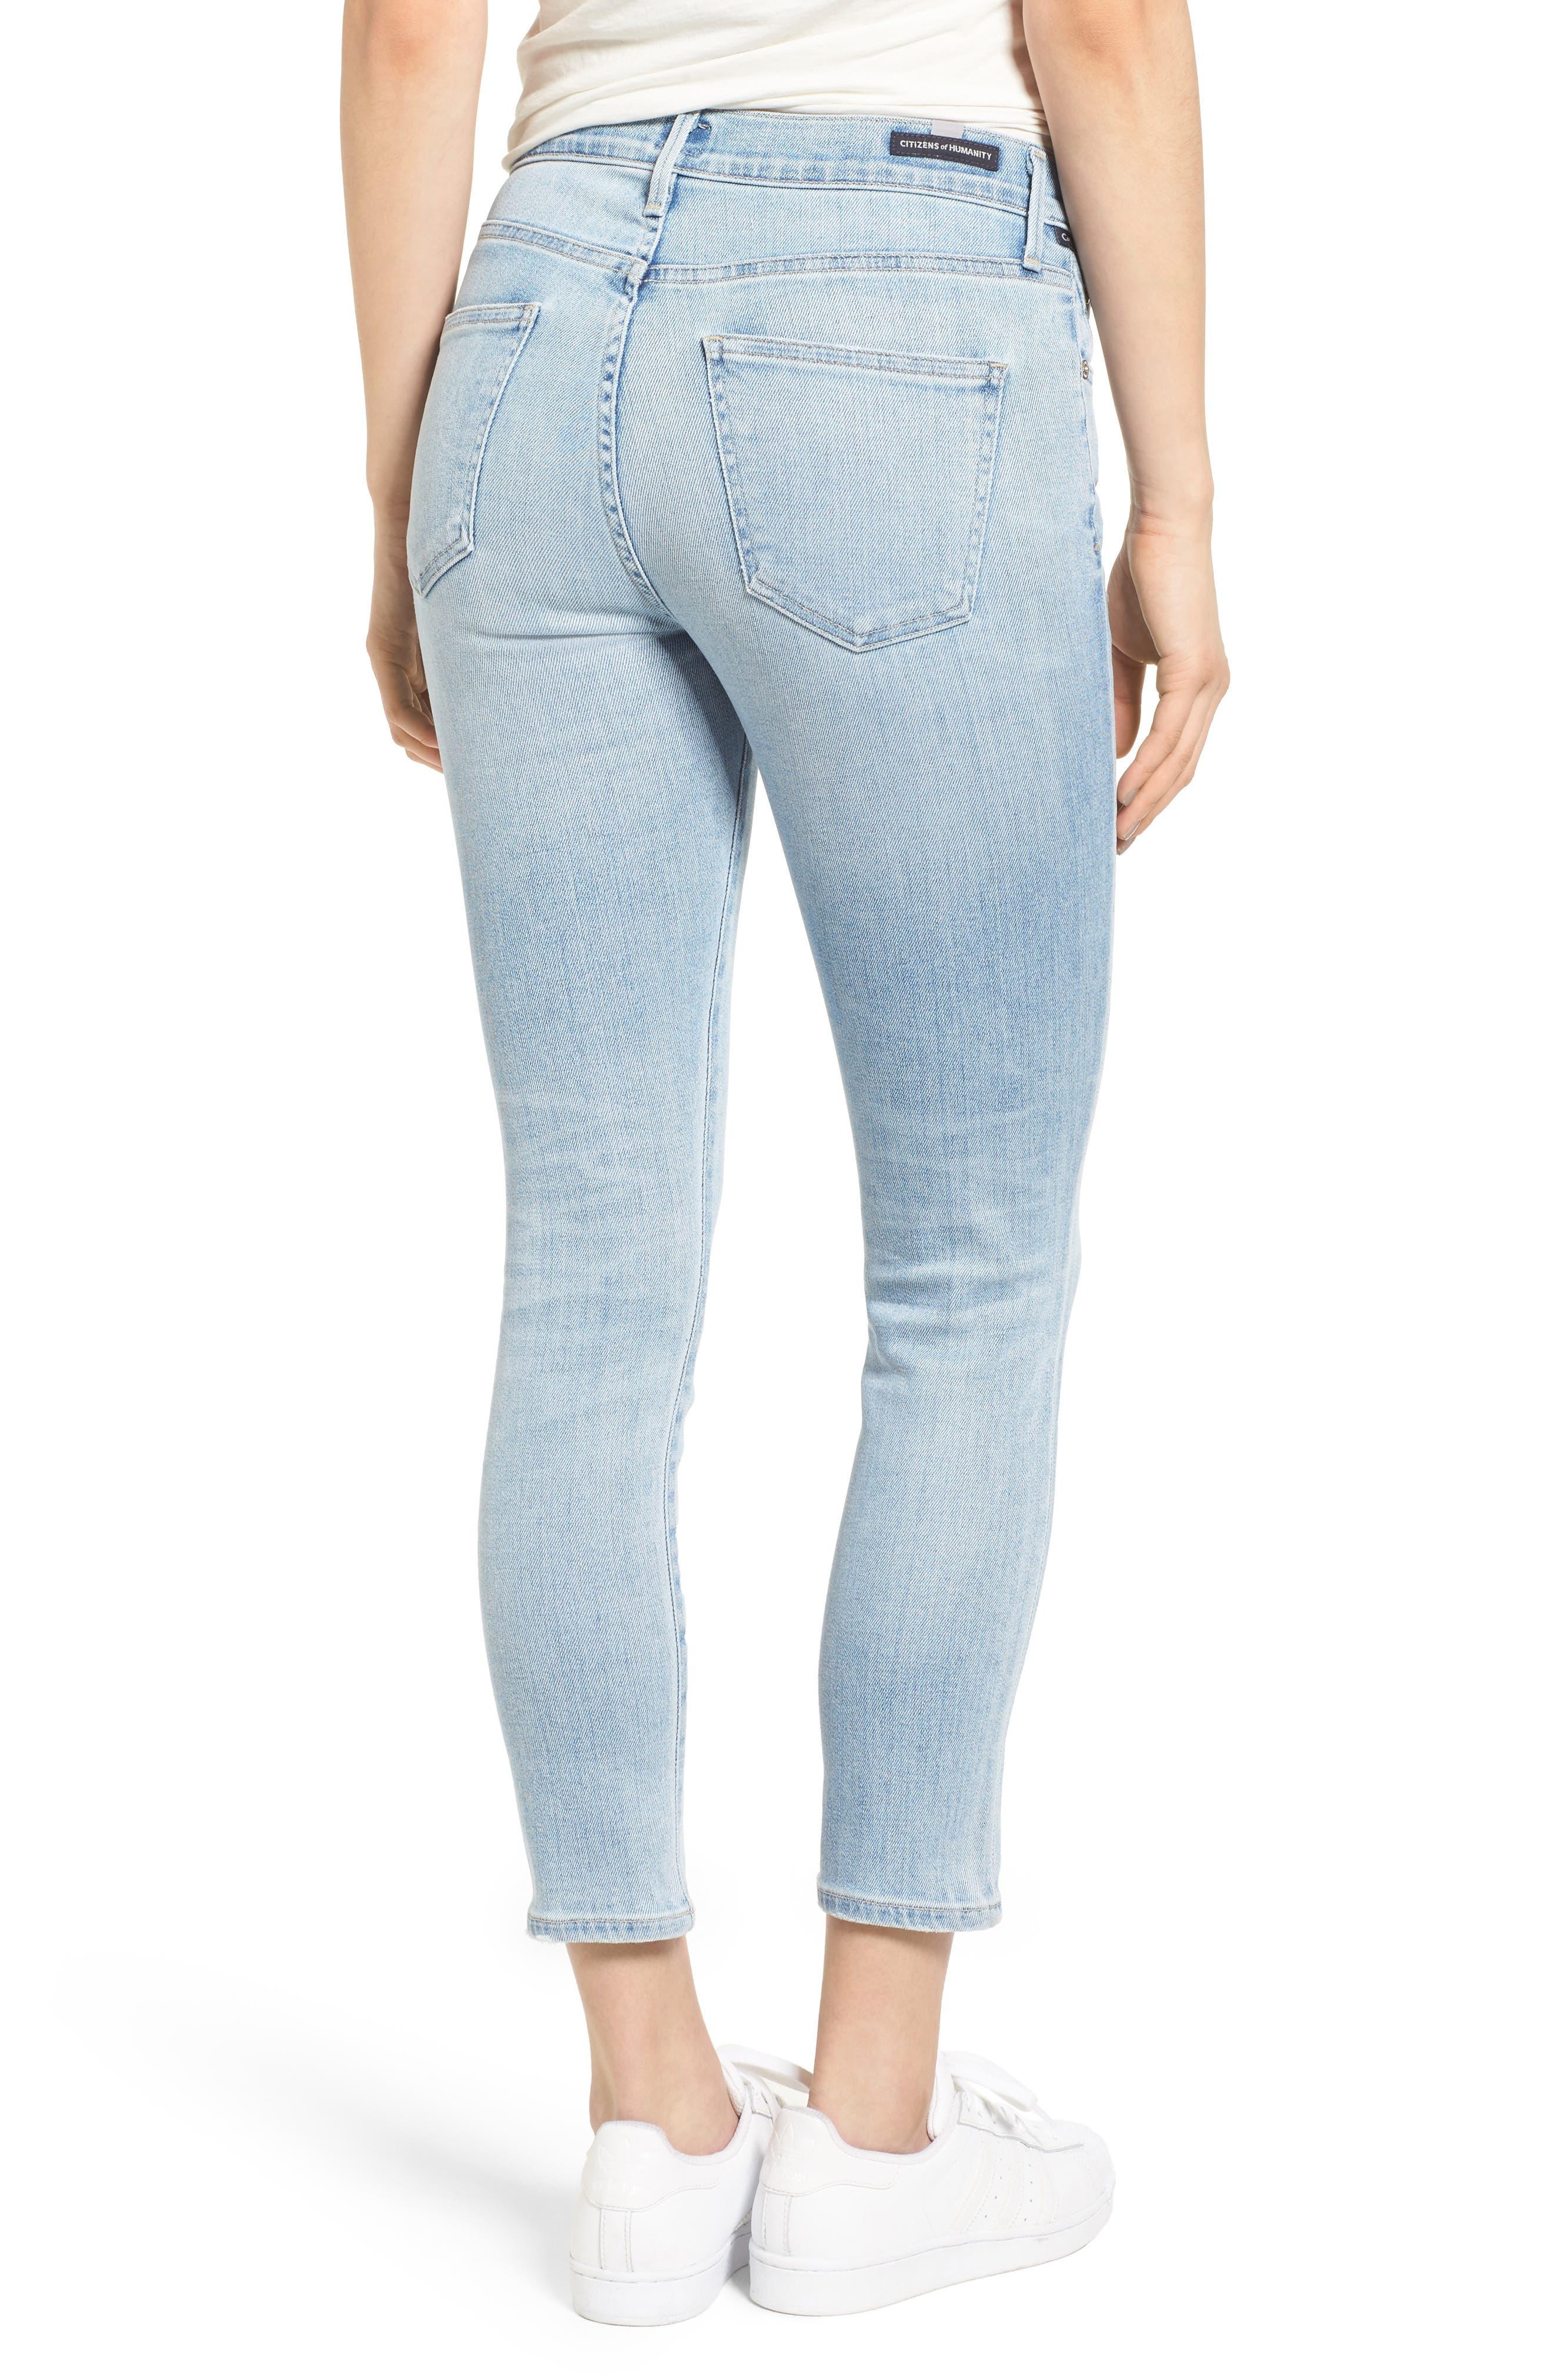 Alternate Image 2  - Citizens of Humanity Rocket High Waist Crop Skinny Jeans (Oracle Blue)